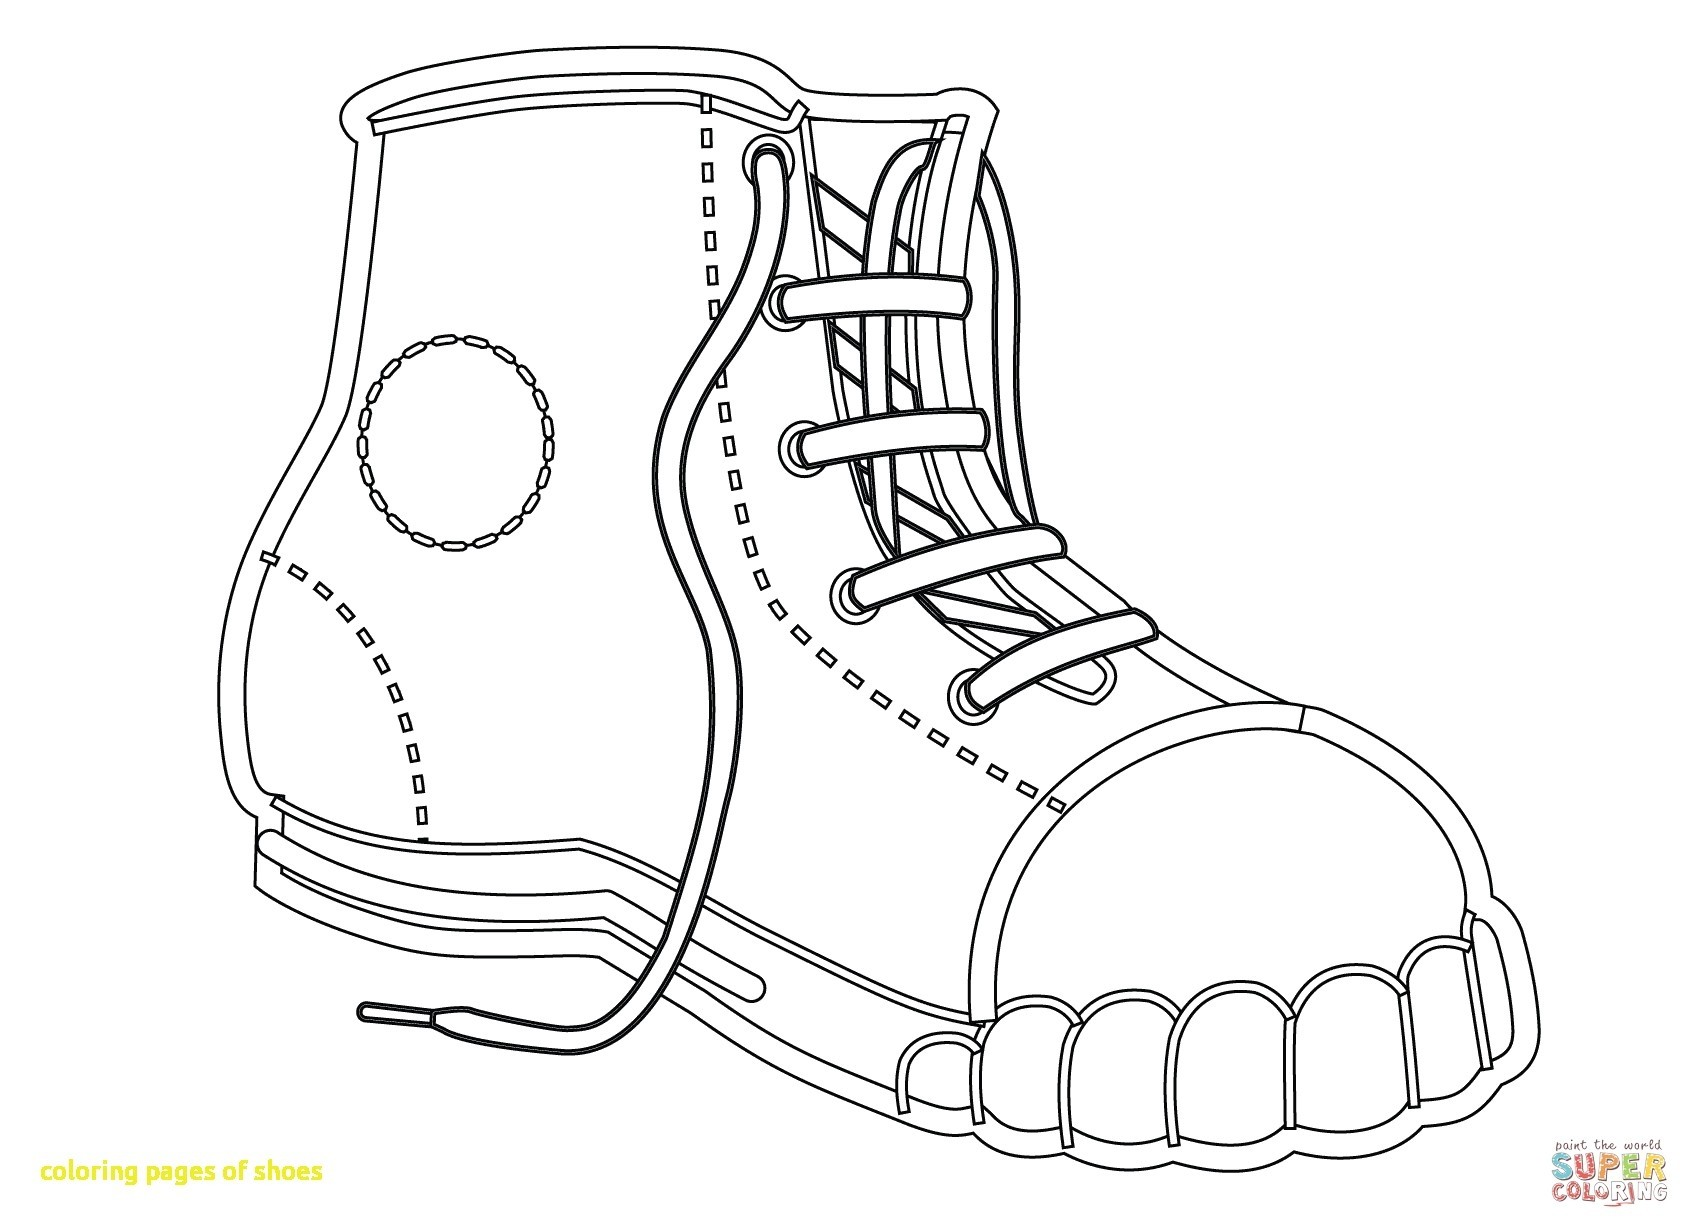 1690x1228 Coloring Pages Of Kd Shoes Copy Coloring Pages Nike Shoes Refrence